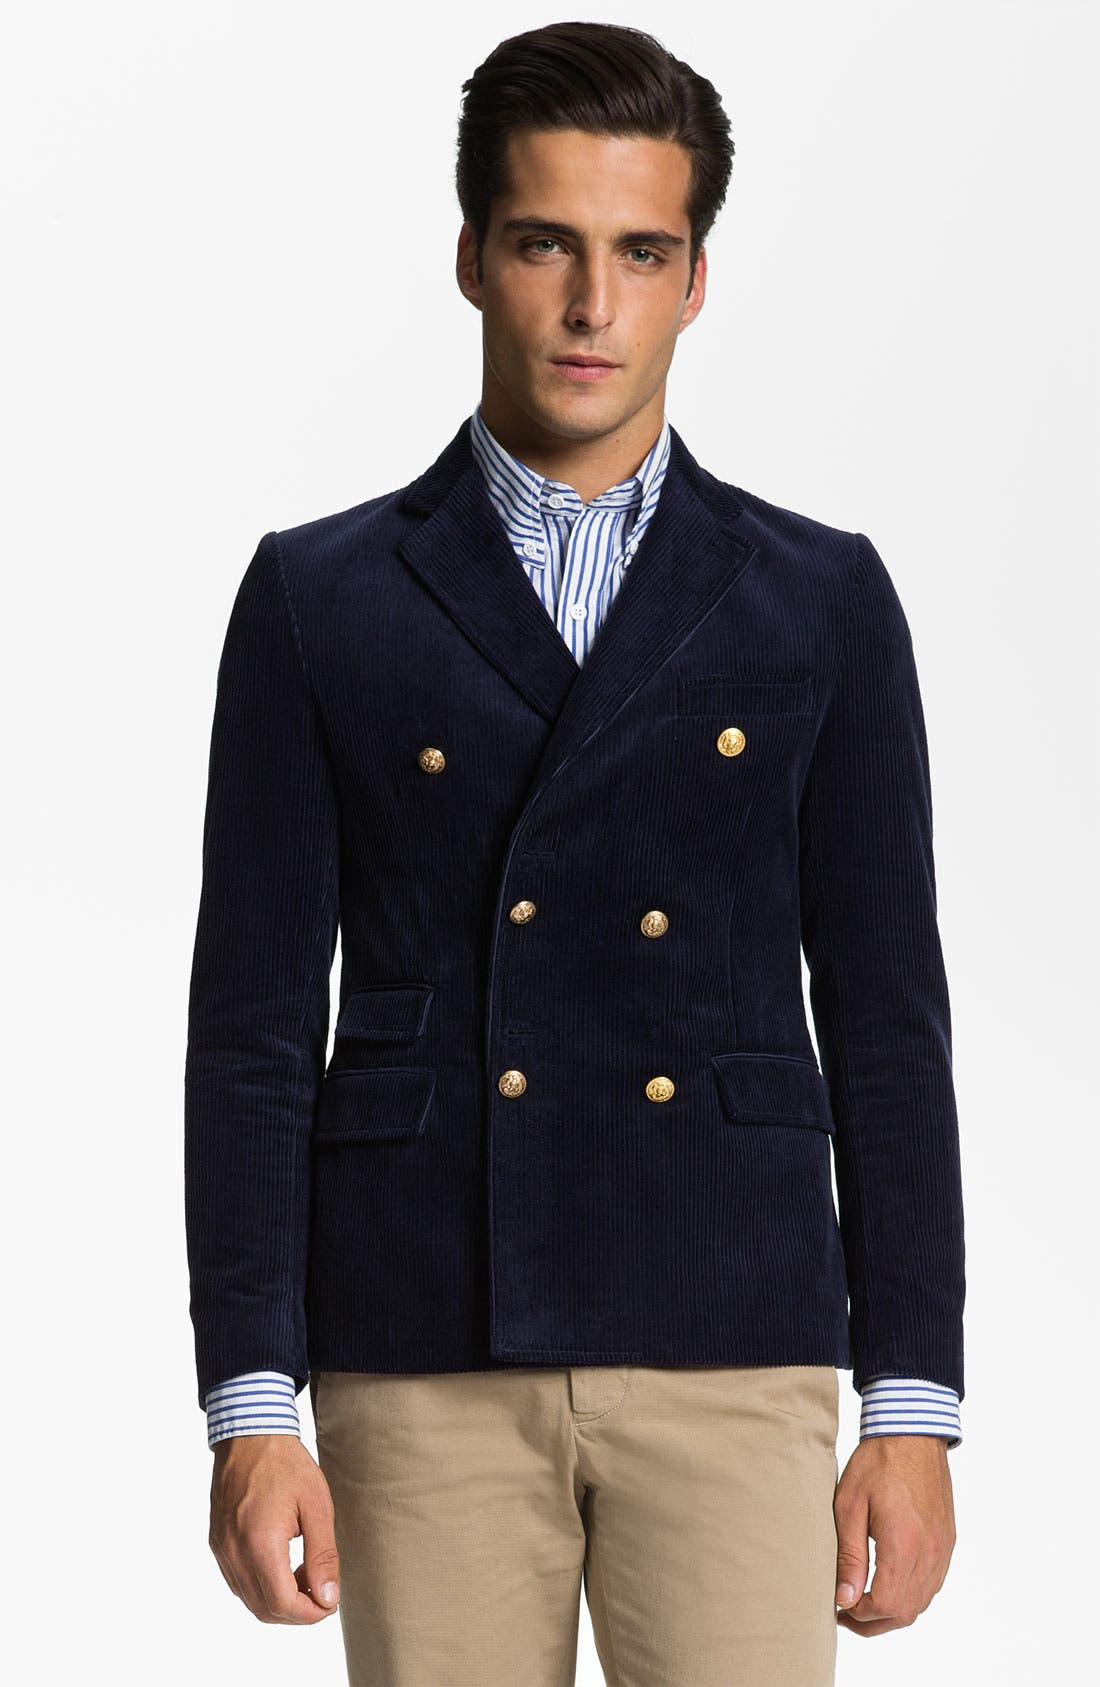 Alternate Image 1 Selected - Band of Outsiders Corduroy Captain's Jacket